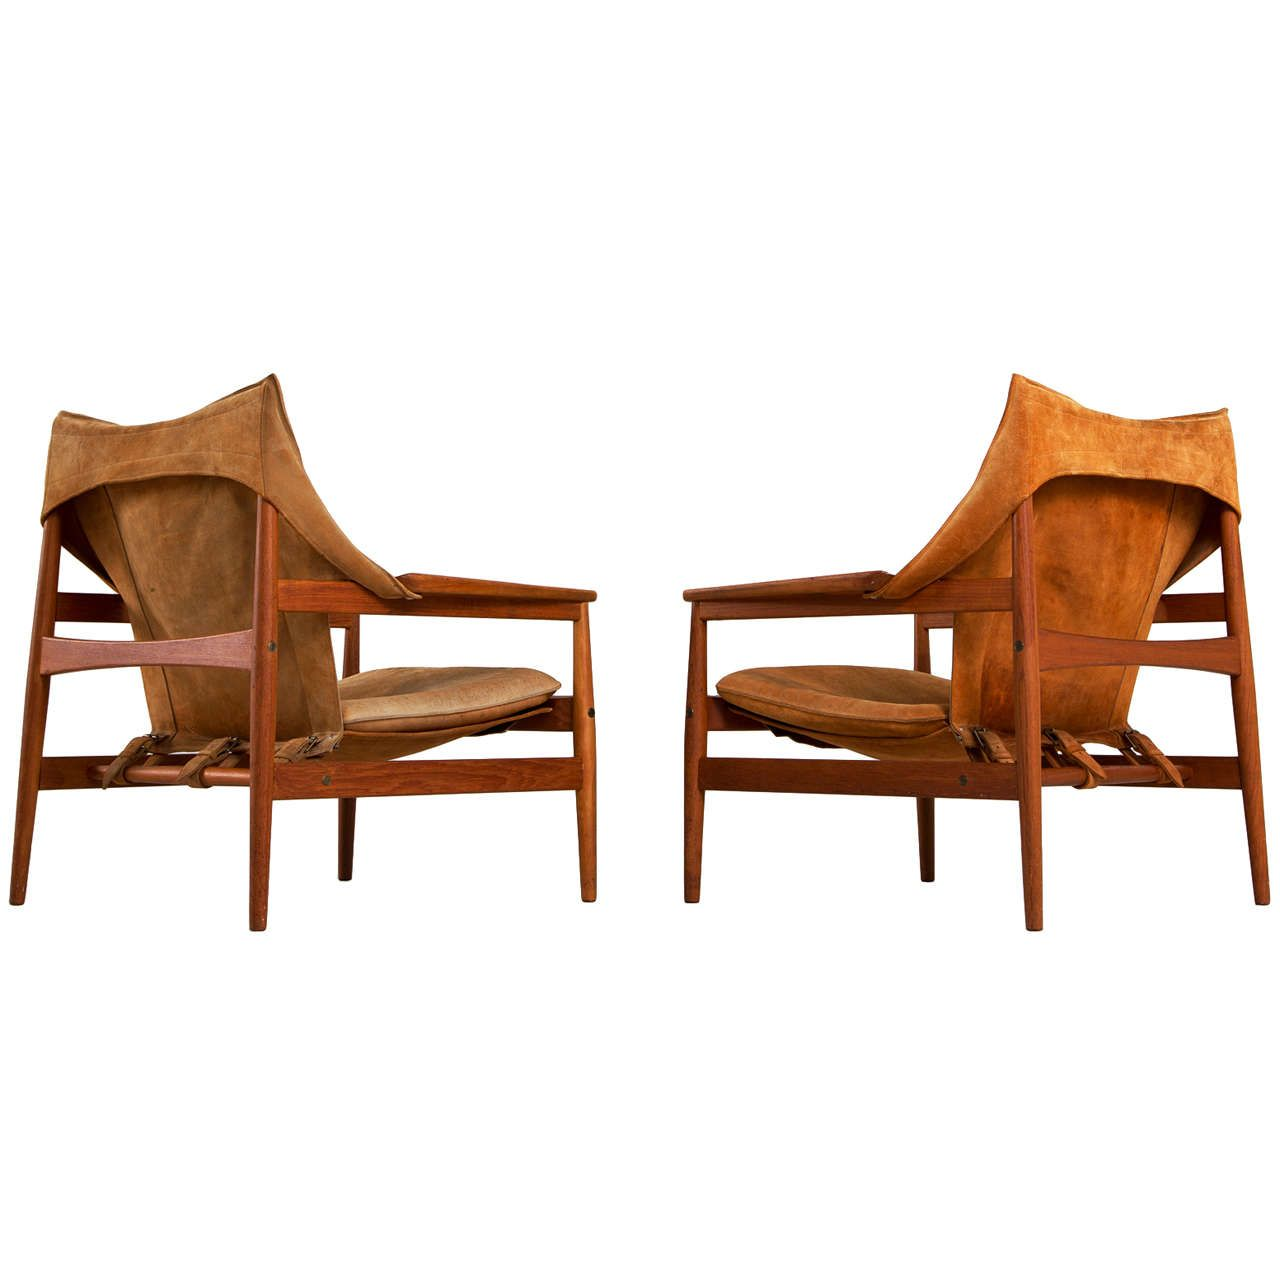 Extremely Rare Safari Chairs by Hans Olsen Modern lounge Lounge